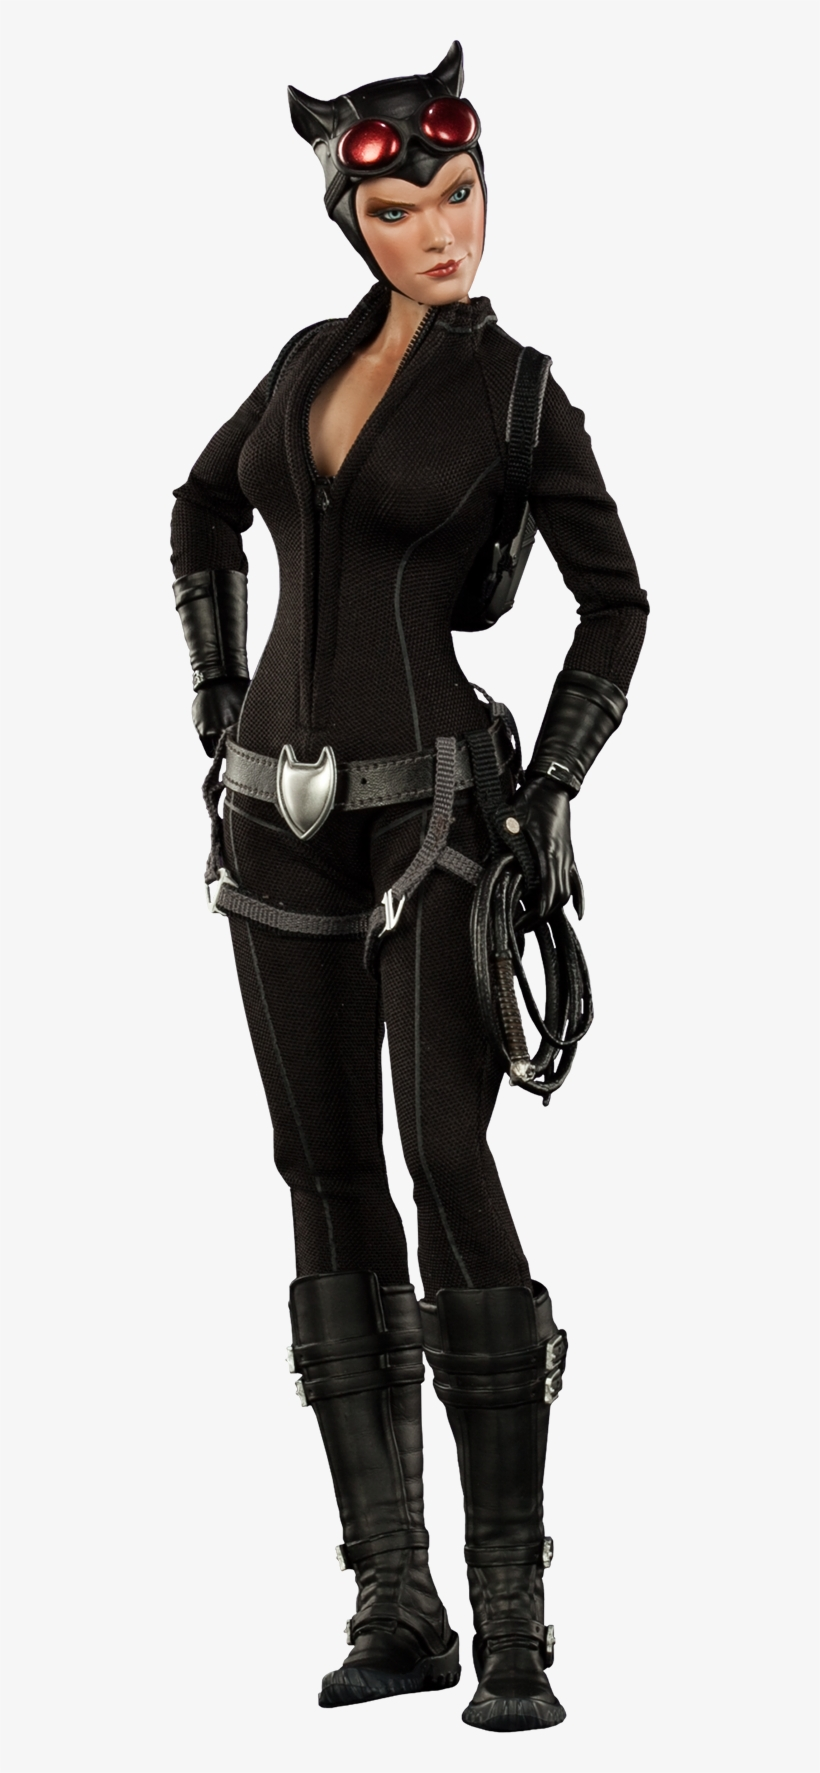 Catwoman Sixth Scale Figure - Catwoman Sideshow 1 6 Scale Figure, transparent png #732736